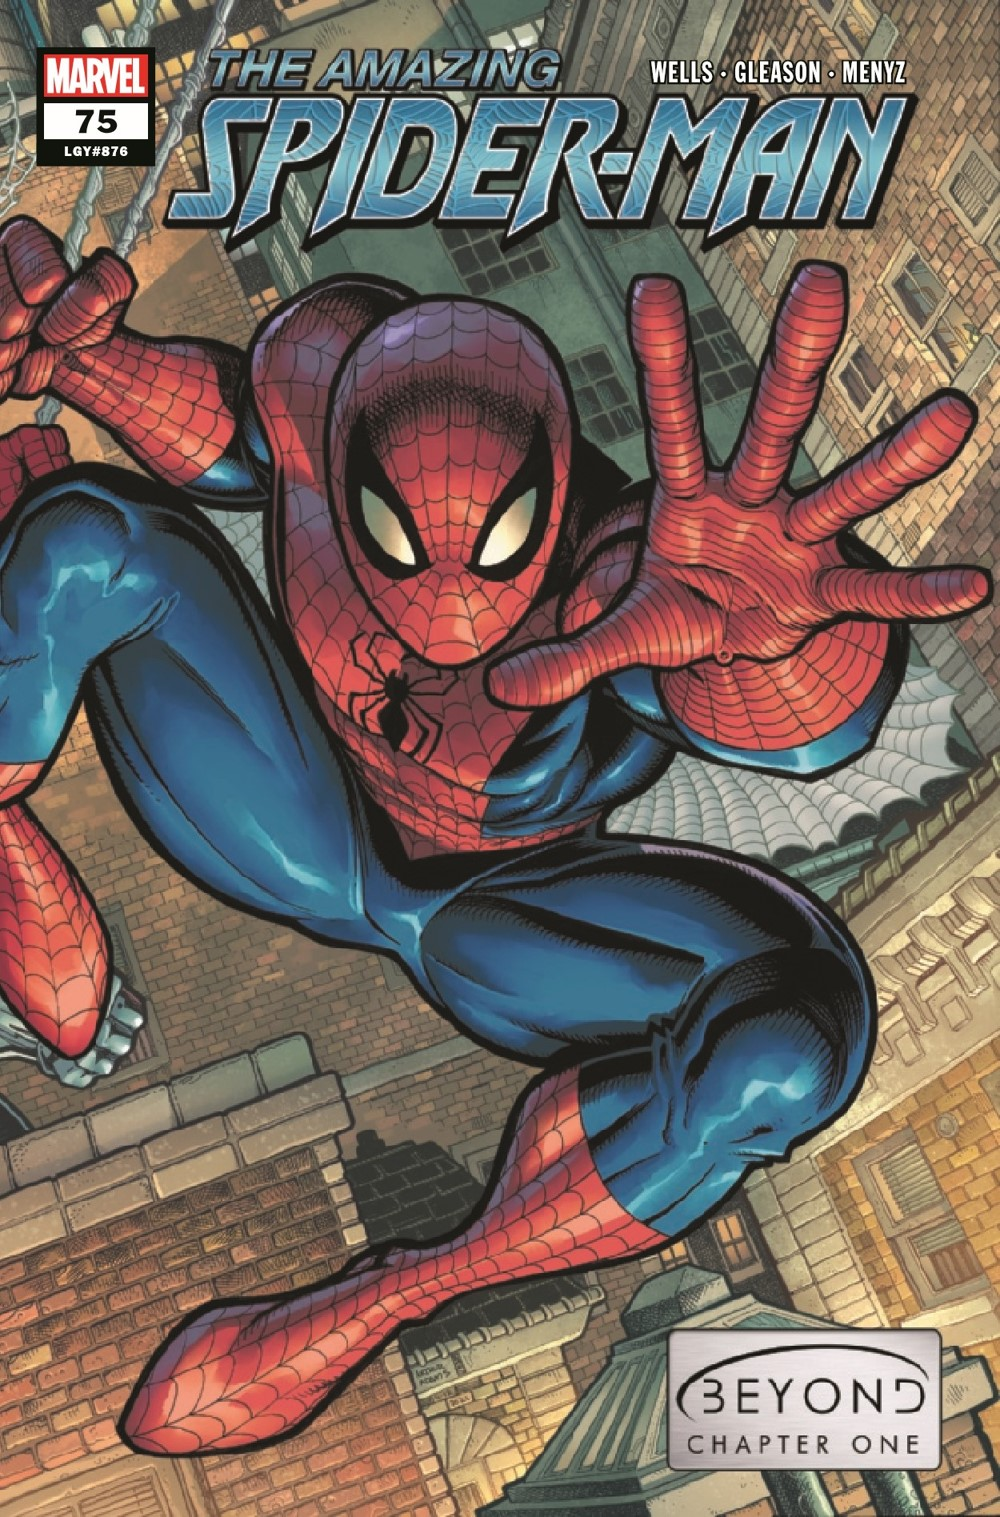 ASM2018075_Preview-1 ComicList Previews: AMAZING SPIDER-MAN #75